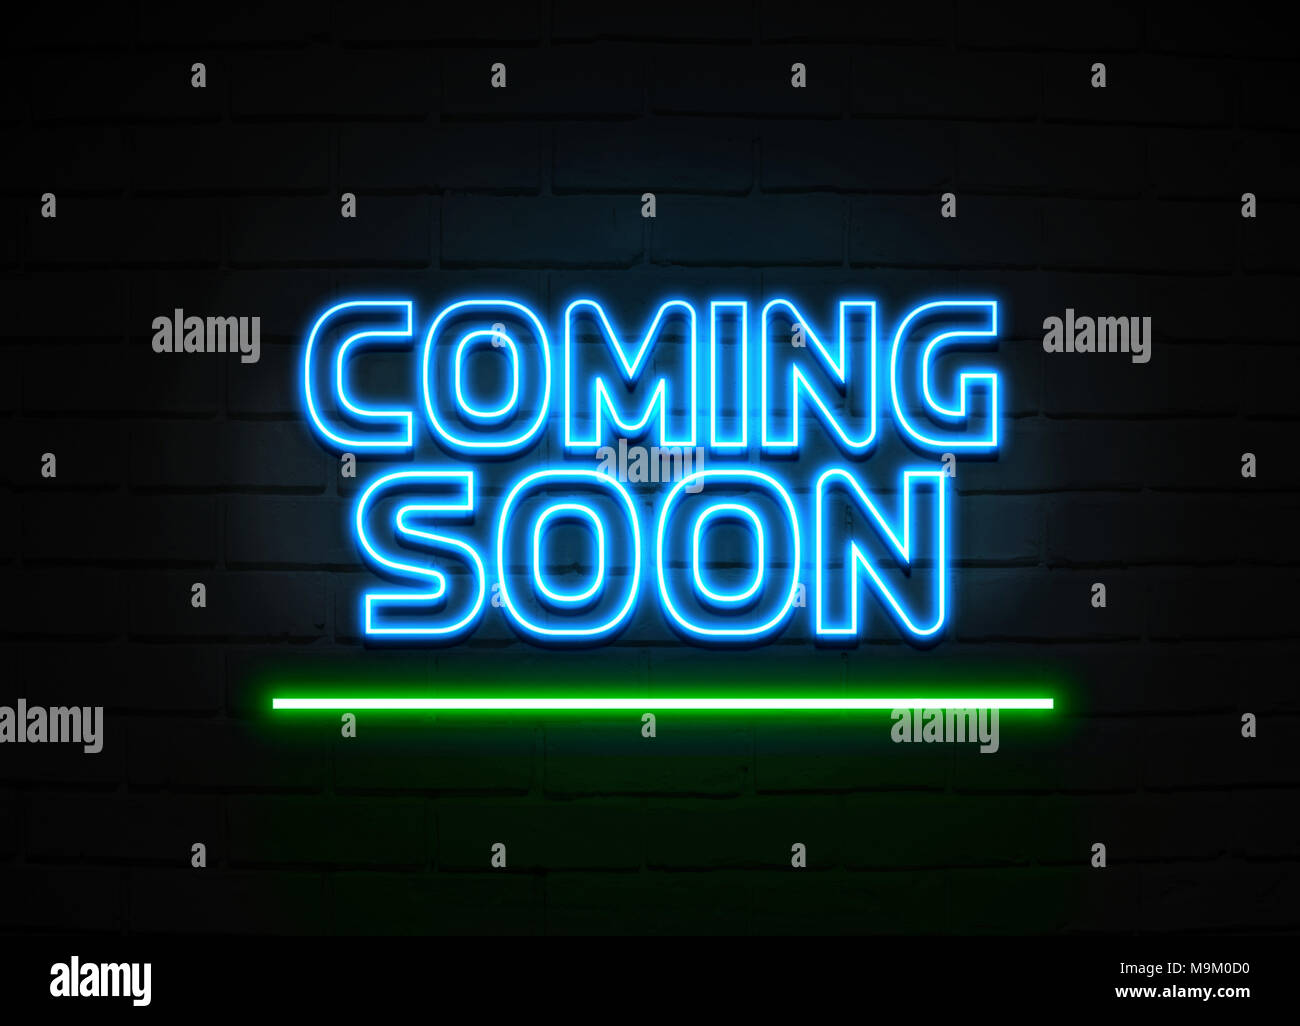 Coming Soon Neon Sign Glowing Neon Sign On Brickwall Wall 3d Rendered Royalty Free Stock Illustration Stock Photo Alamy